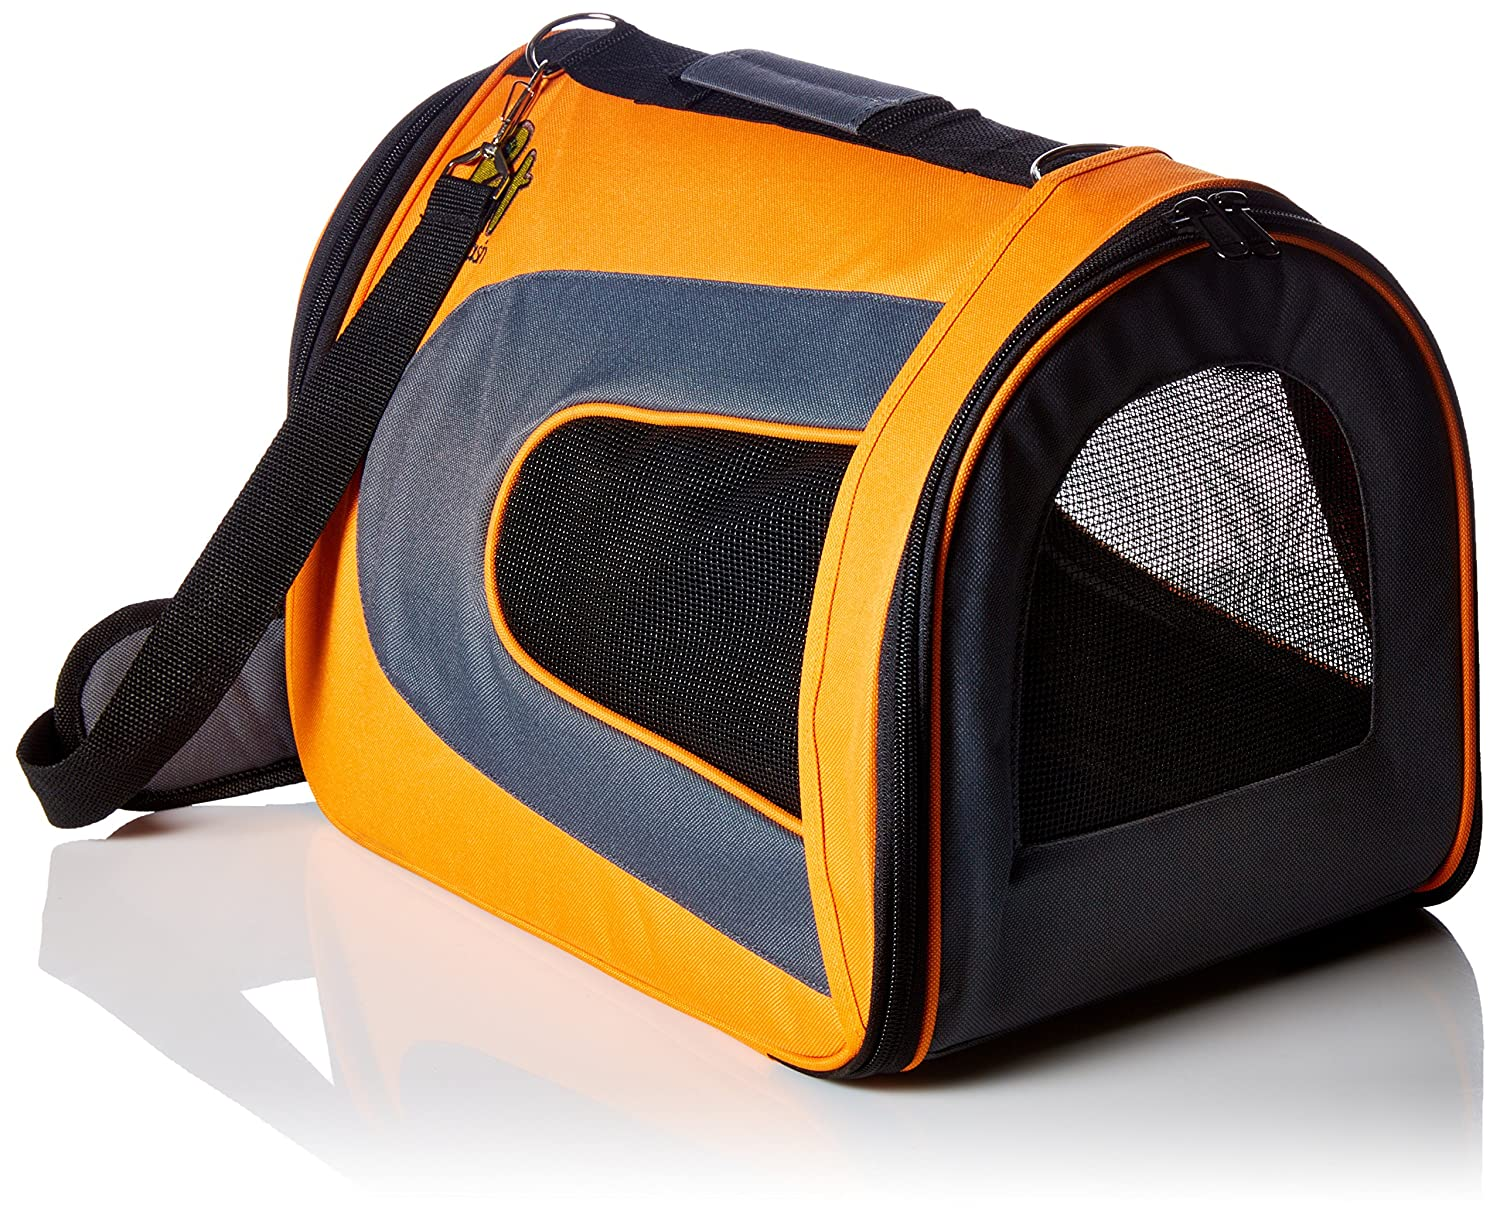 orange Large (18'' x 11'' x 10'') orange Large (18'' x 11'' x 10'') Soft-Sided Pet Travel Carrier [Airline TSA Approved] Portable Traveling Kennel for, Cats, Small Dogs and Puppies by Pet Magasin (Large, orange)